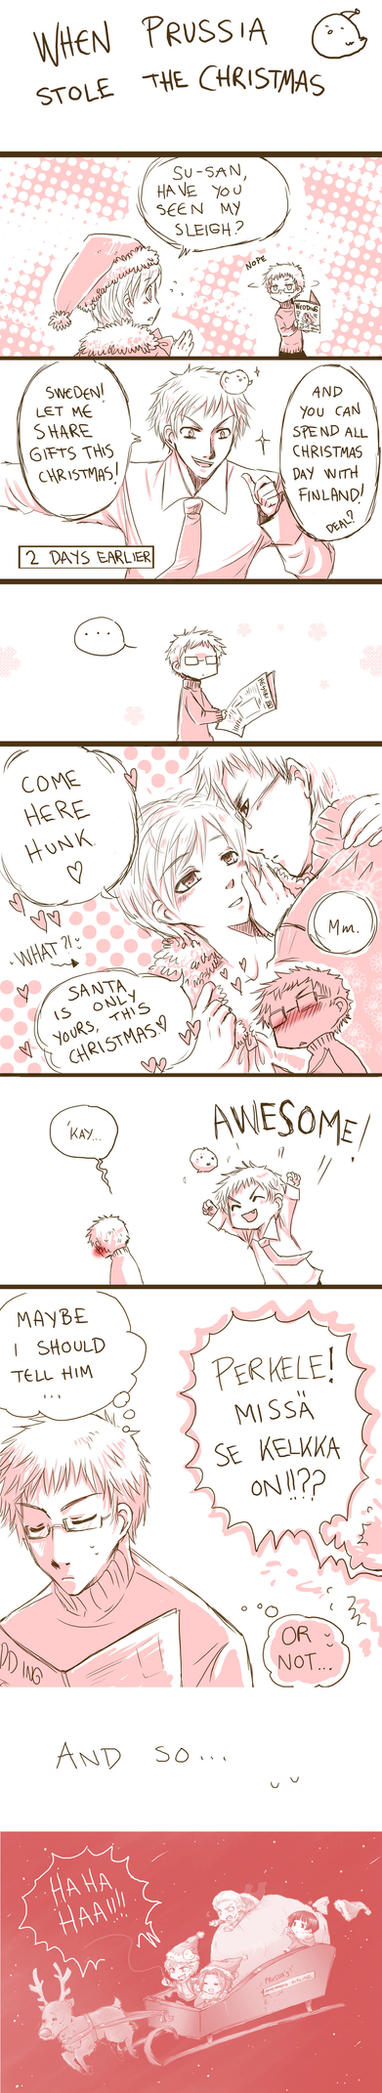 Prussia stole the Christmas by Sadyna